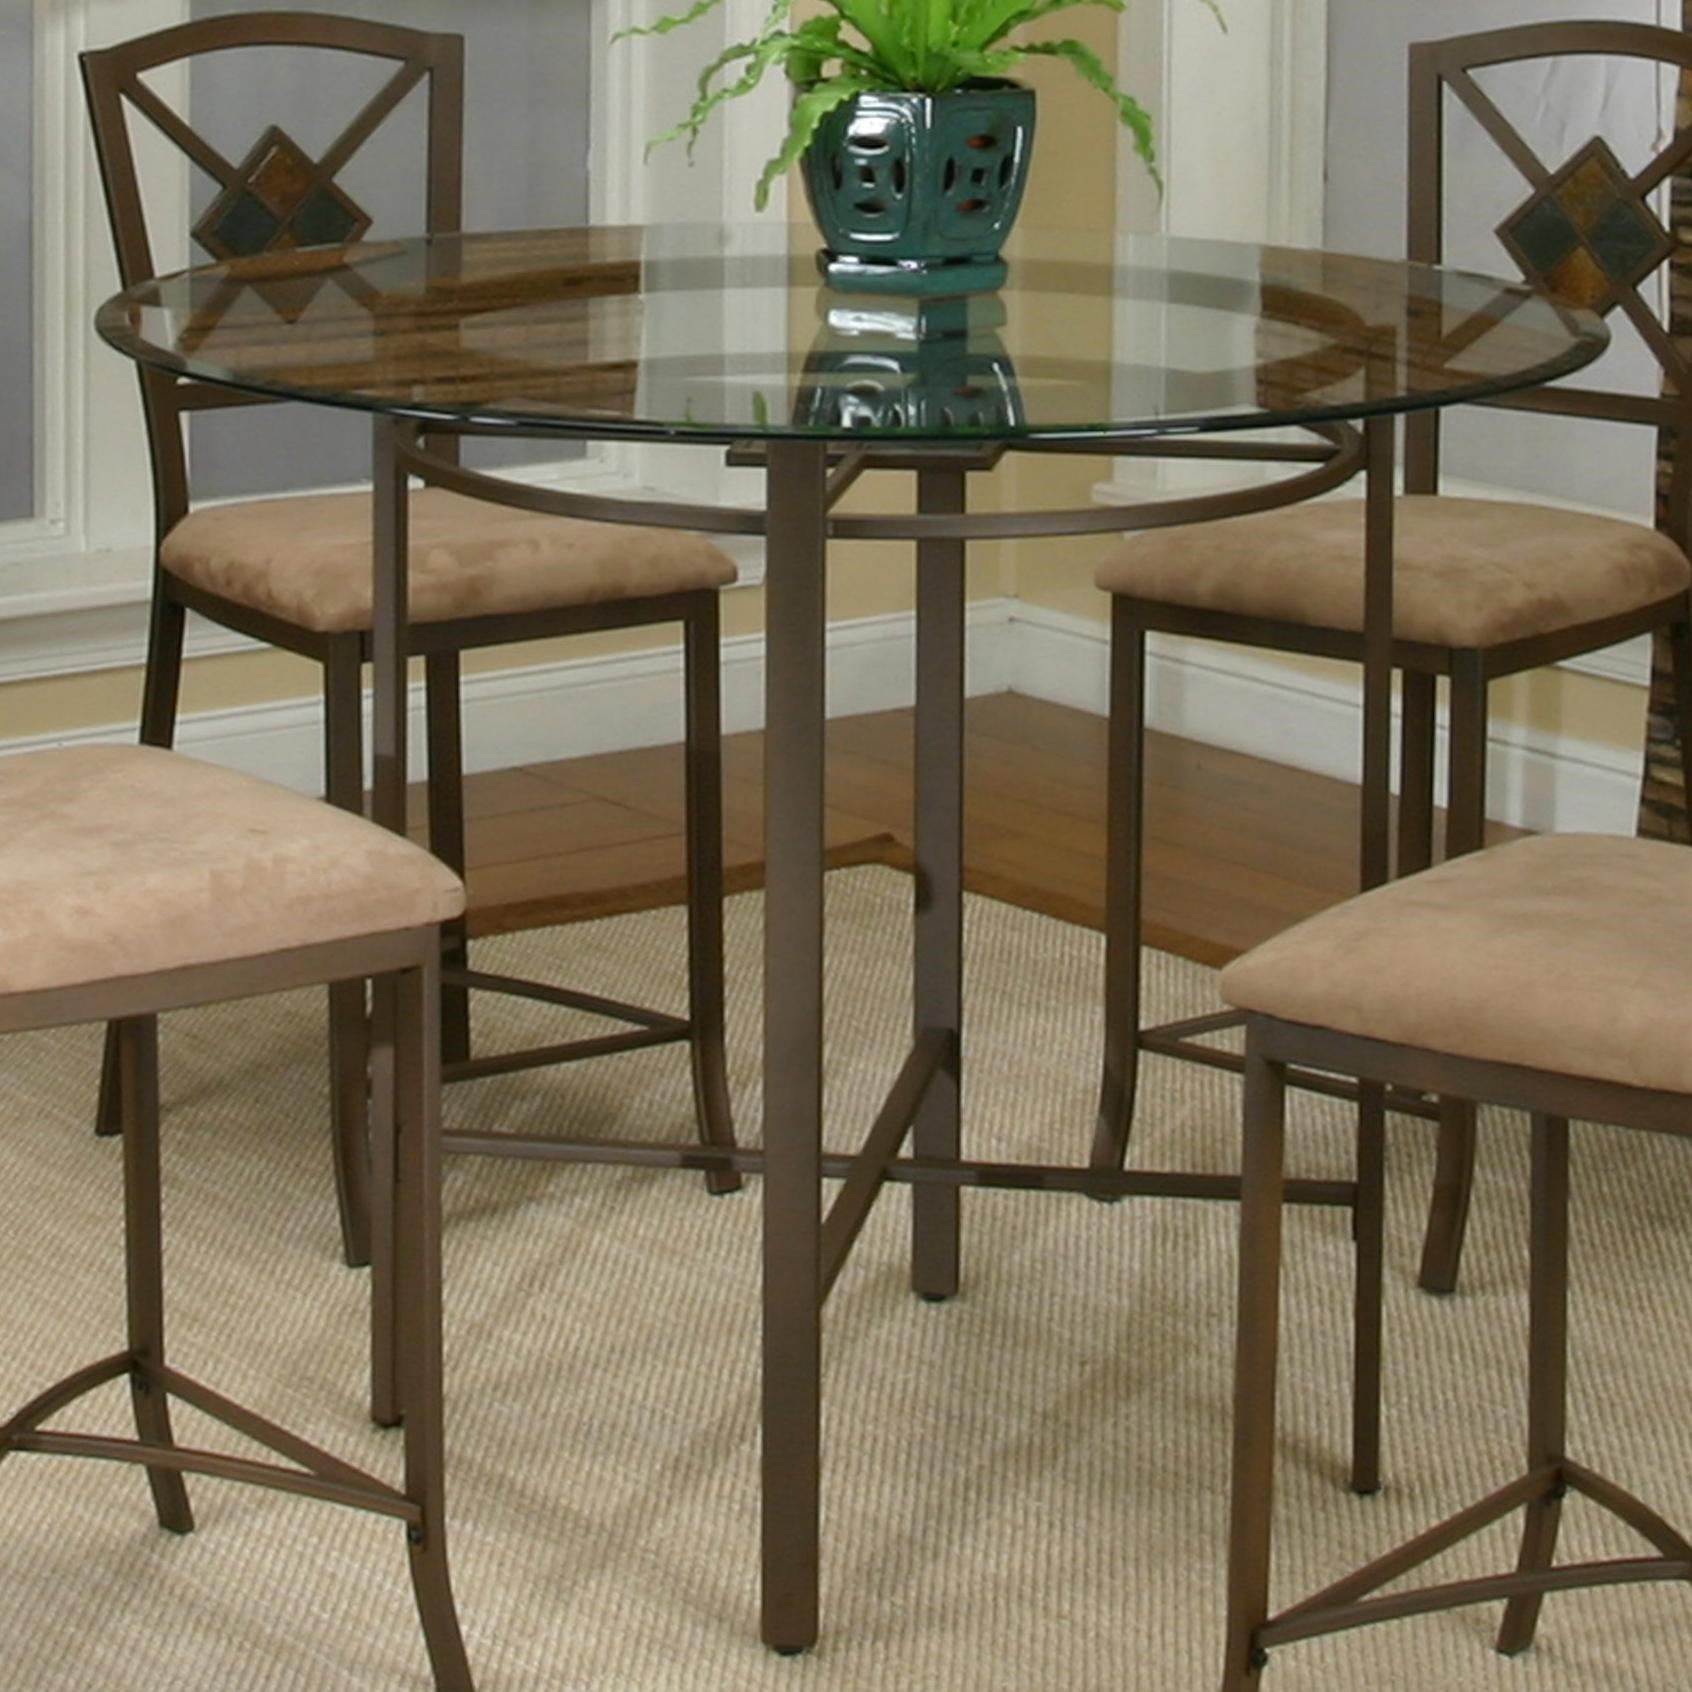 Cramco, Inc Cramco Trading Company   Piazza Metal Pub Table W/ Glass Top